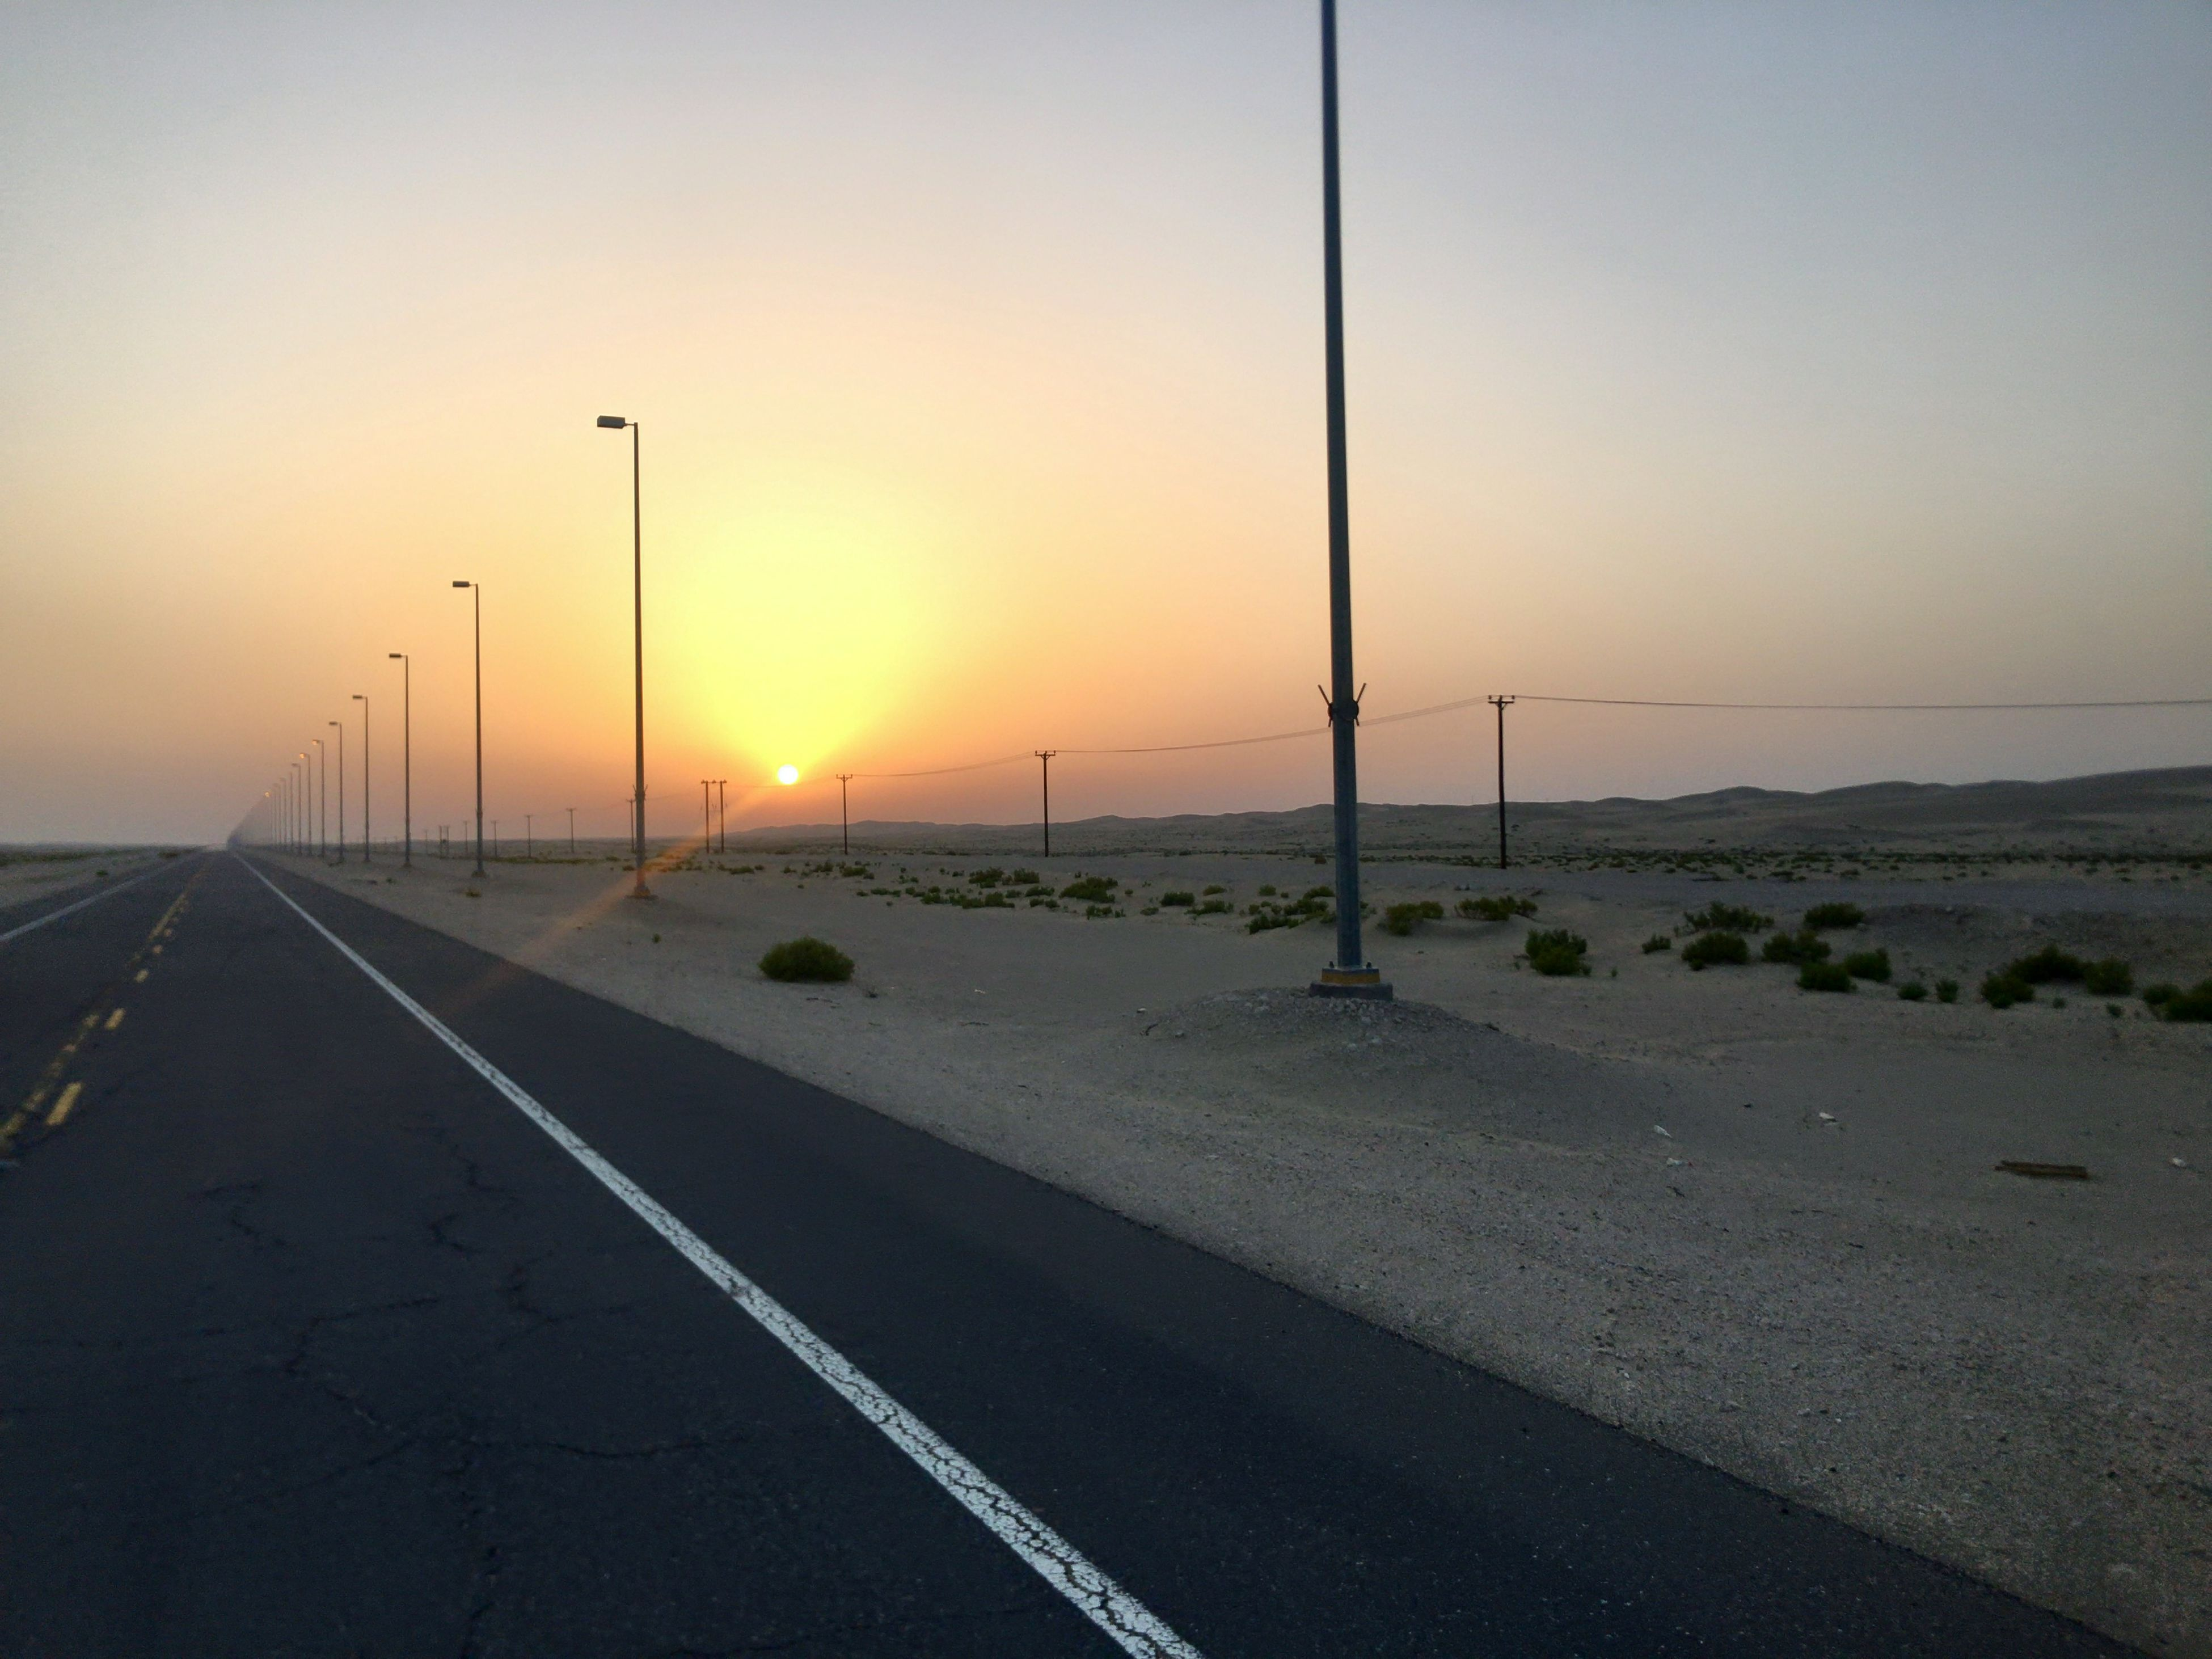 sunset, road, transportation, the way forward, scenics, nature, tranquil scene, sky, sun, no people, tranquility, outdoors, beauty in nature, clear sky, sea, water, day